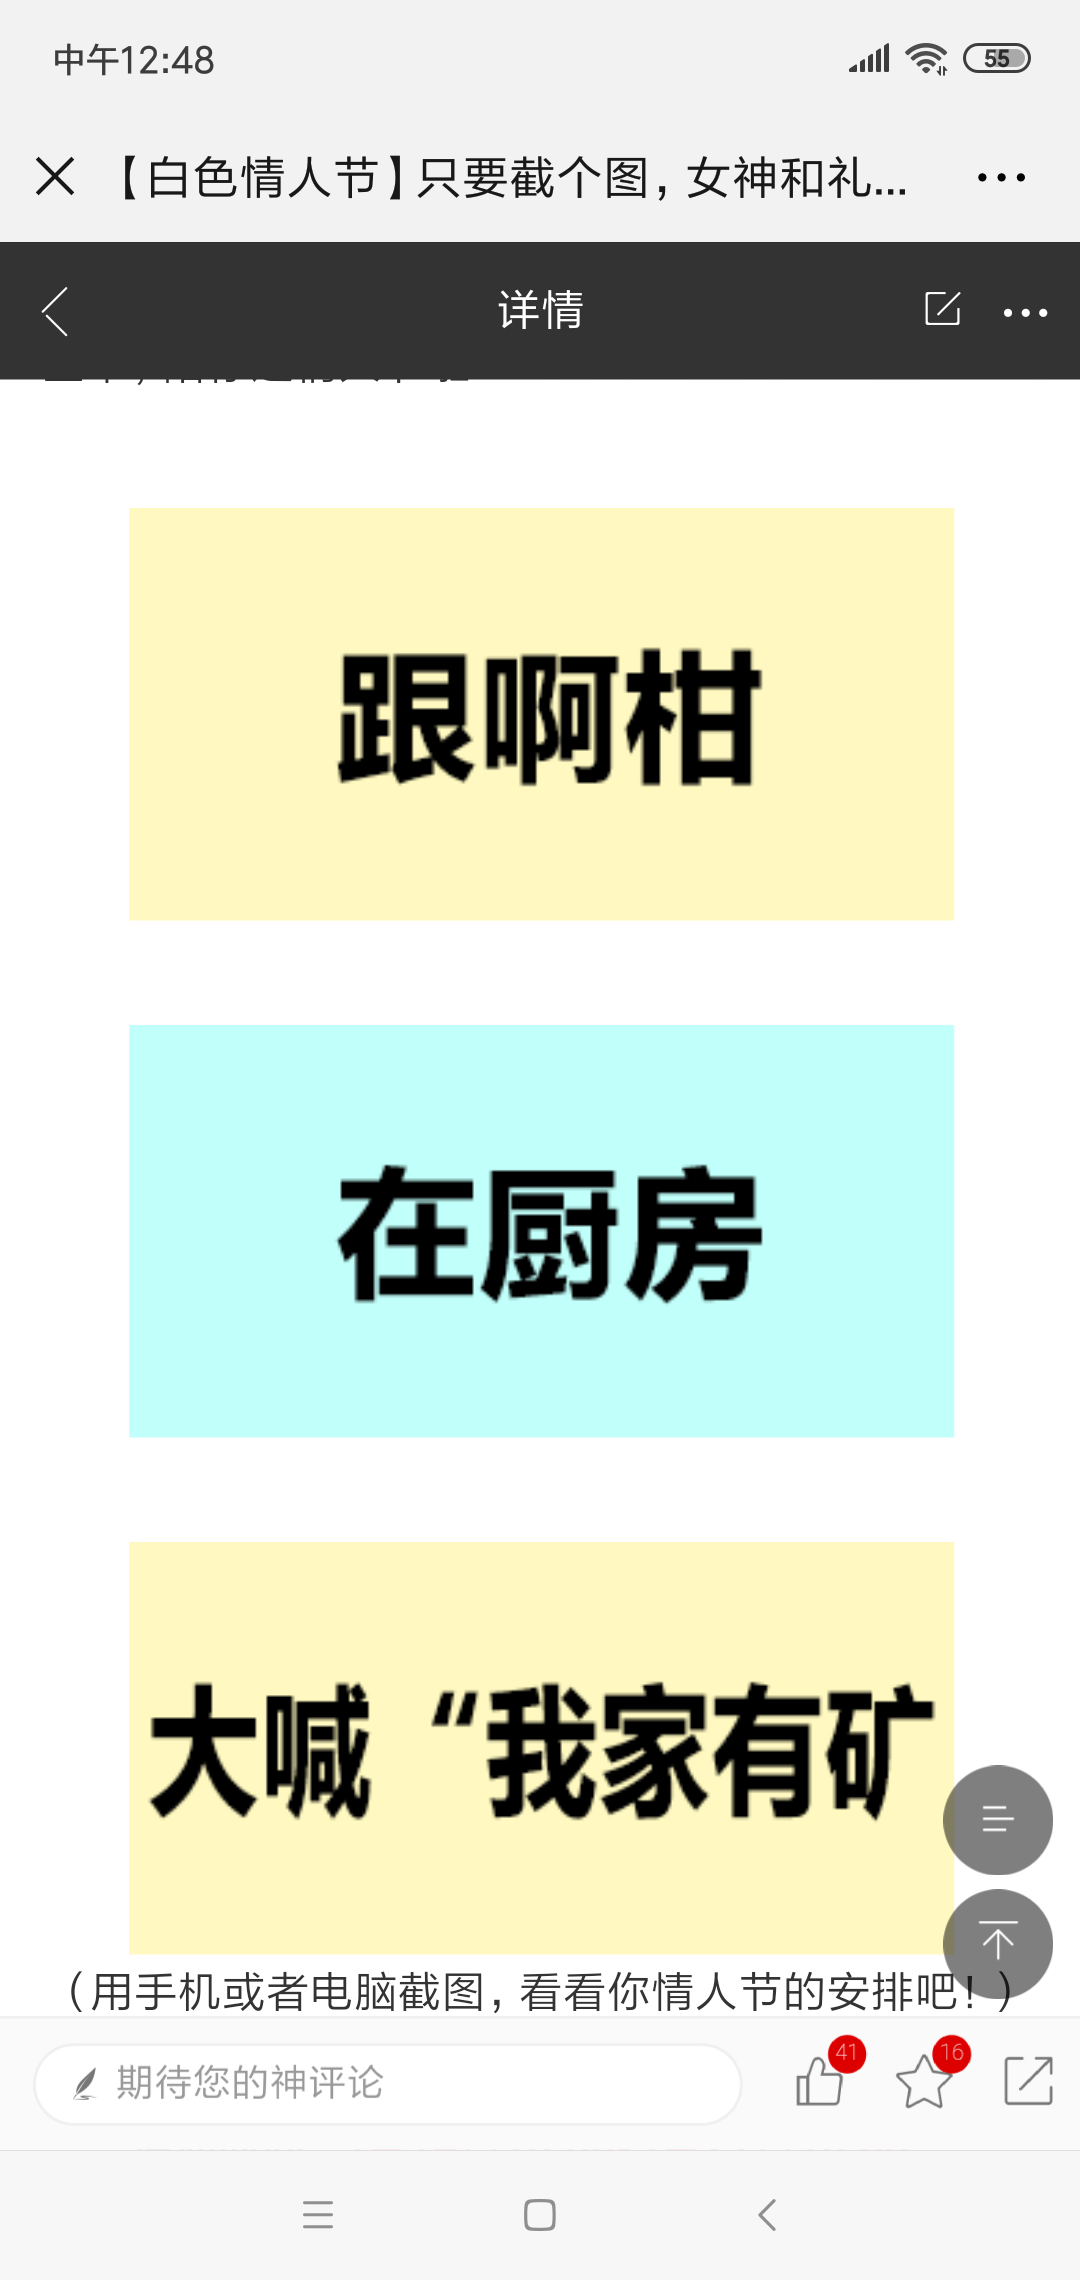 Screenshot_2019-03-14-12-48-12-881_com.tencent.mm.png